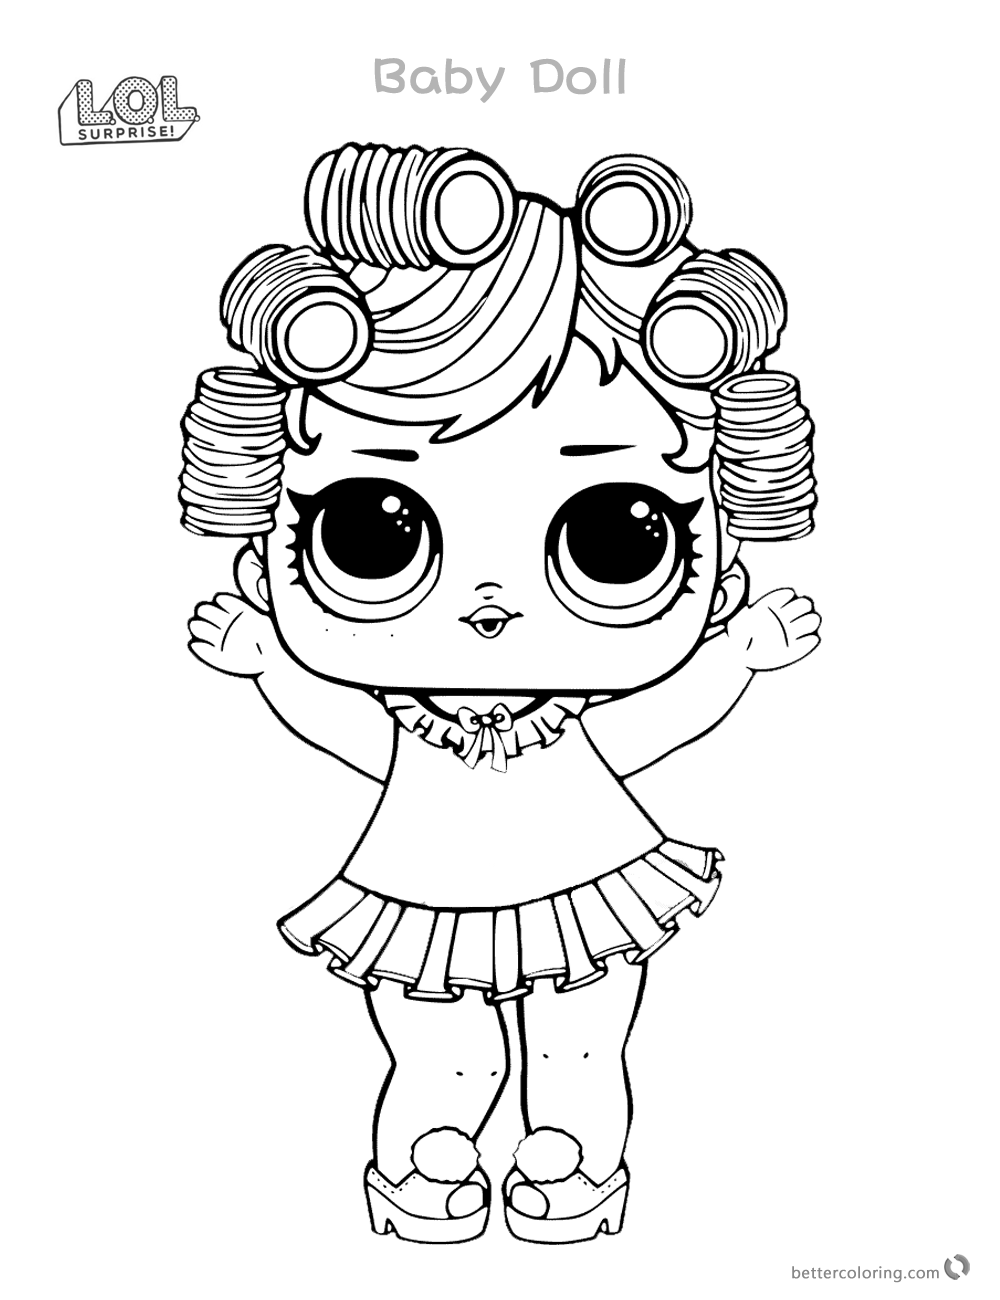 Baby Doll LOL Dolls Coloring Pages